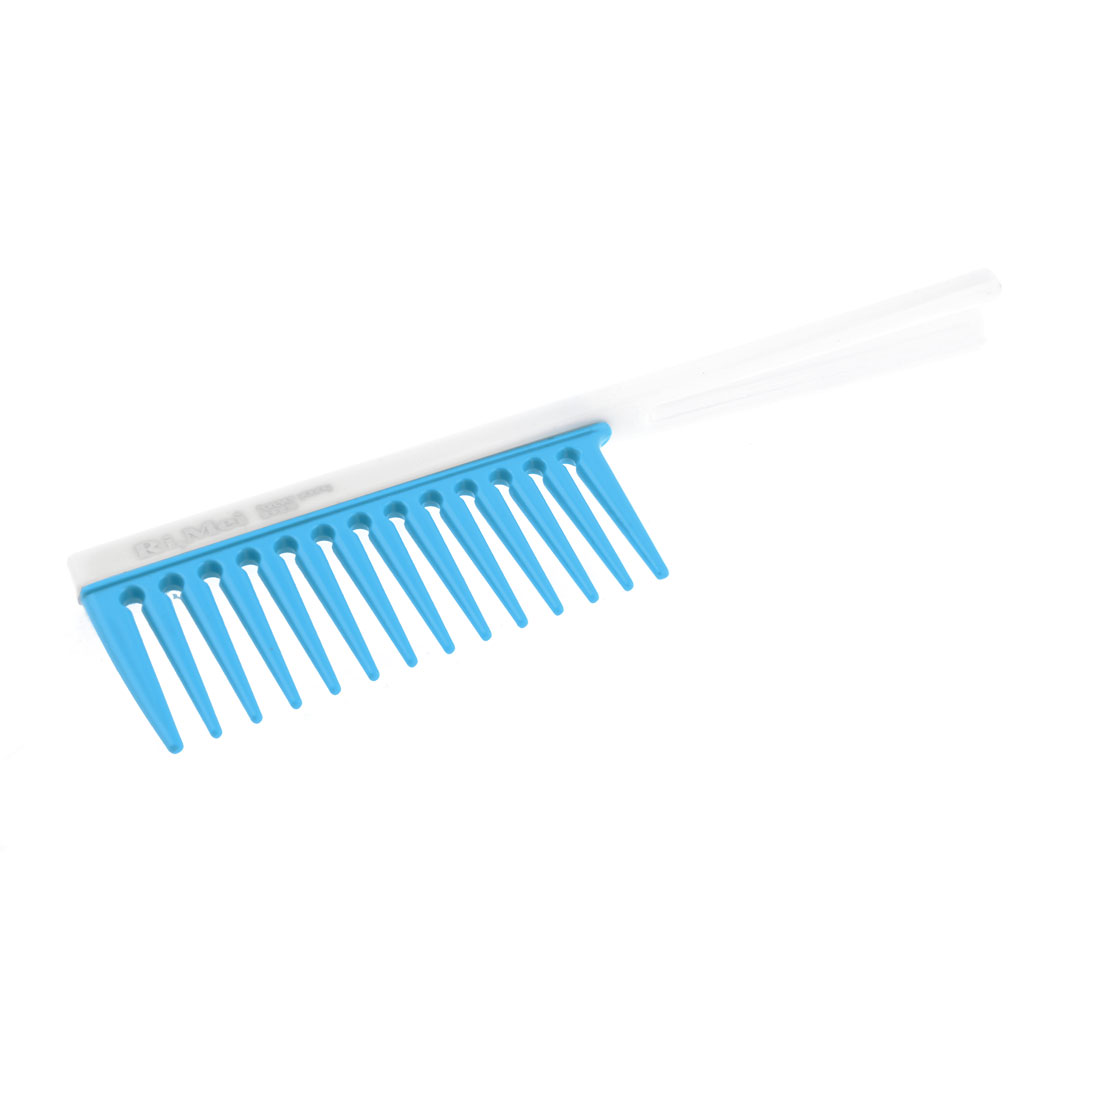 Lady Nonslip Handle Plastic Wide Toothed Hair Comb Blue White